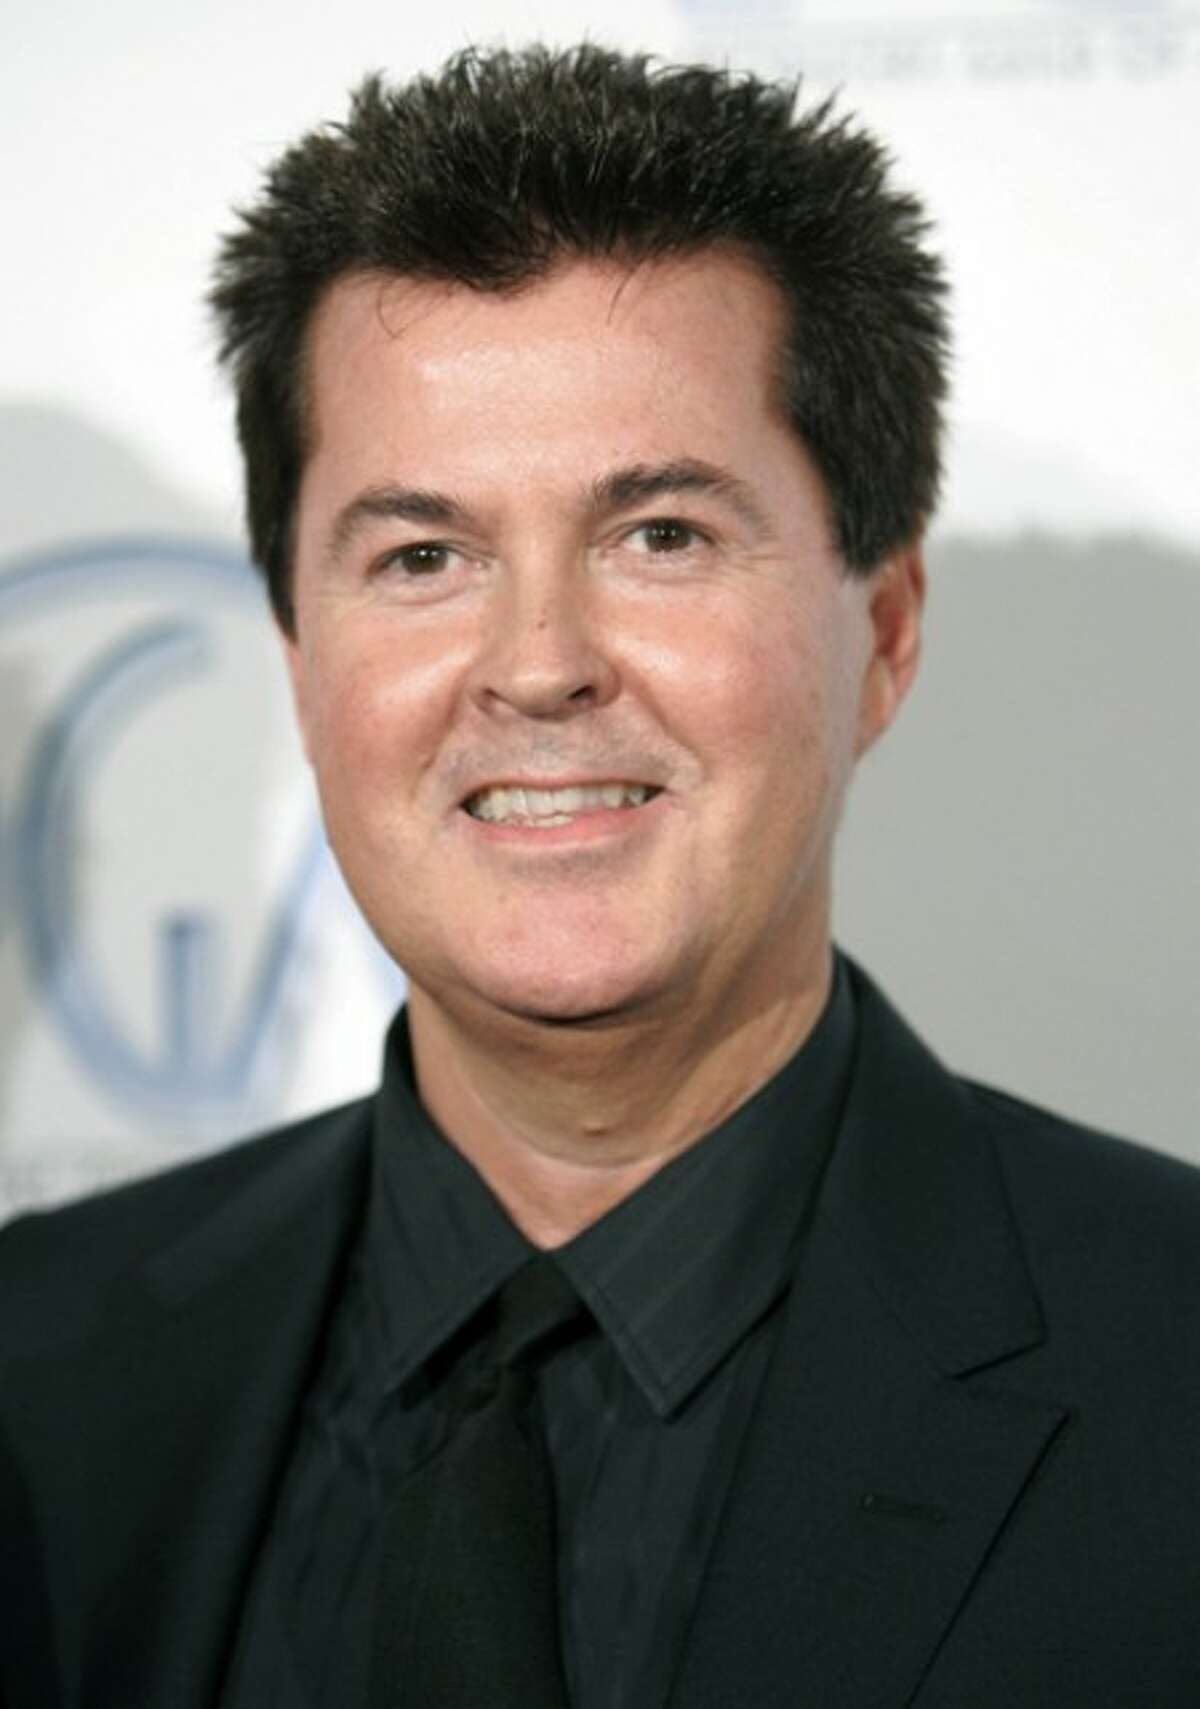 Producer Simon Fuller arrives at the 2008 Producers Guild Awards where Fuller received the Visionary Award in Beverly Hills, Calif. (AP Photo/Danny Moloshok, file)